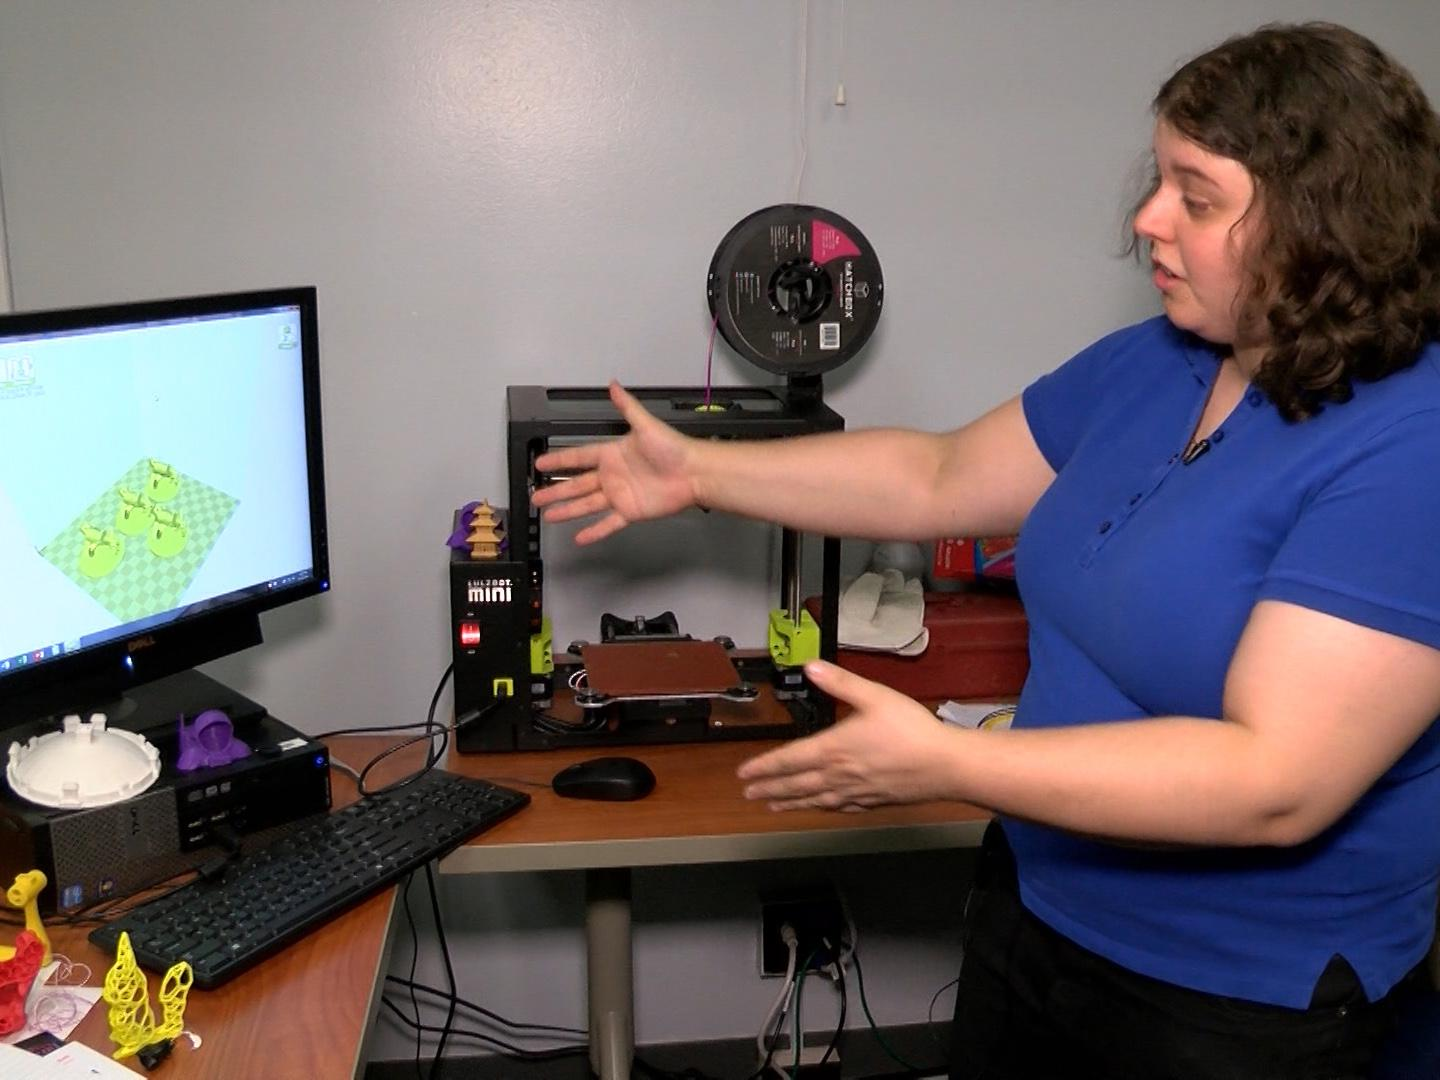 Sharona Ginsberg showing a 3D printer/computer station